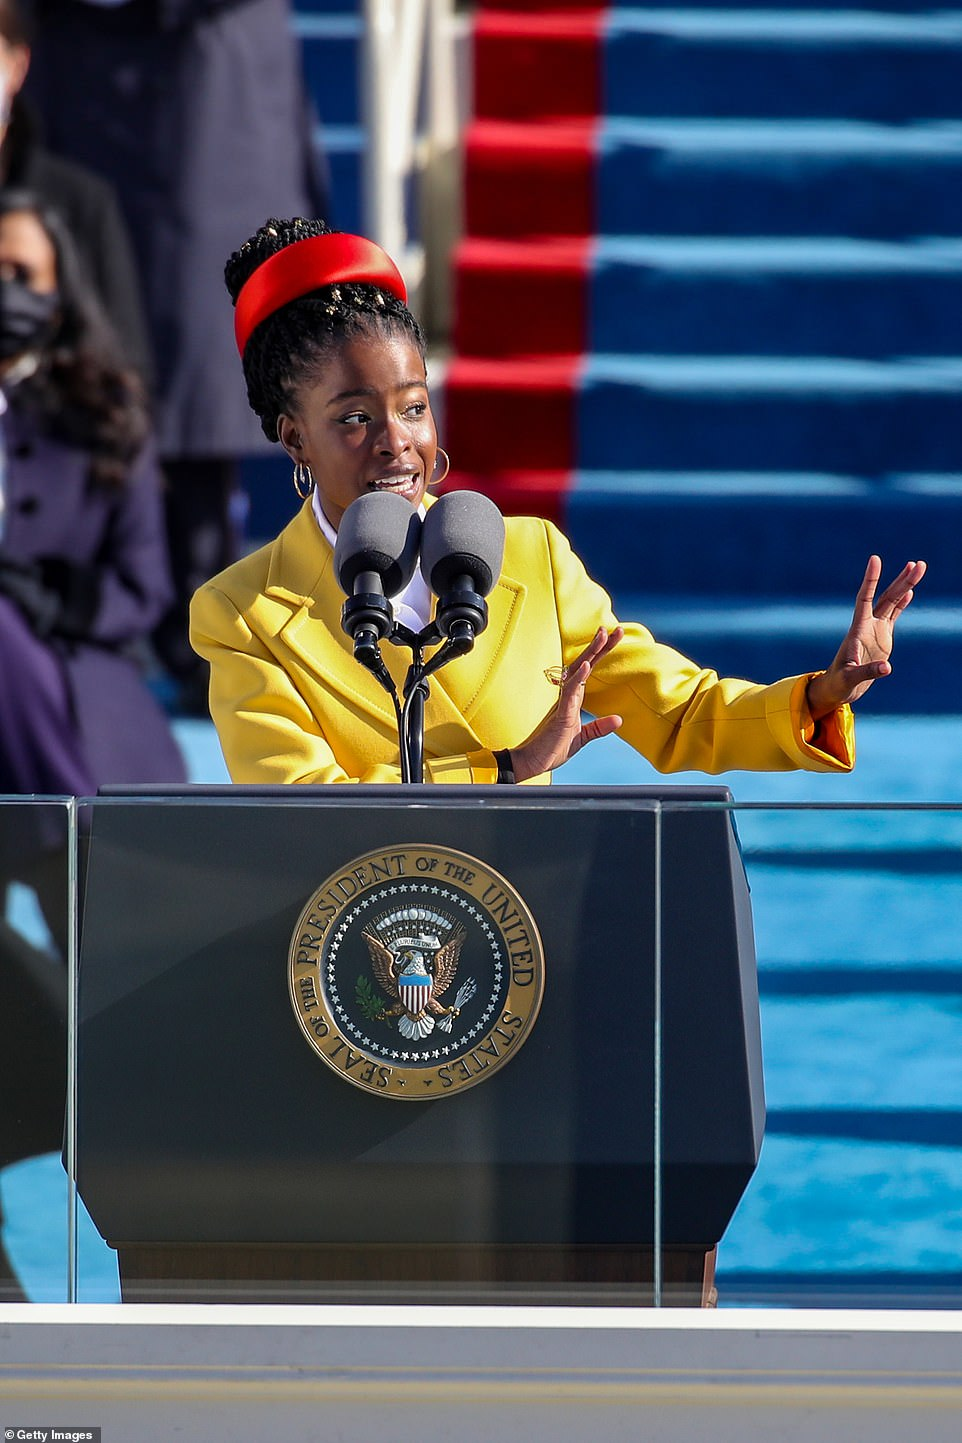 Gorman is the nation's first-ever youth poet laureate. 'Being American is more than a pride we inherit. It's the past we step into and how we repair it,' she said